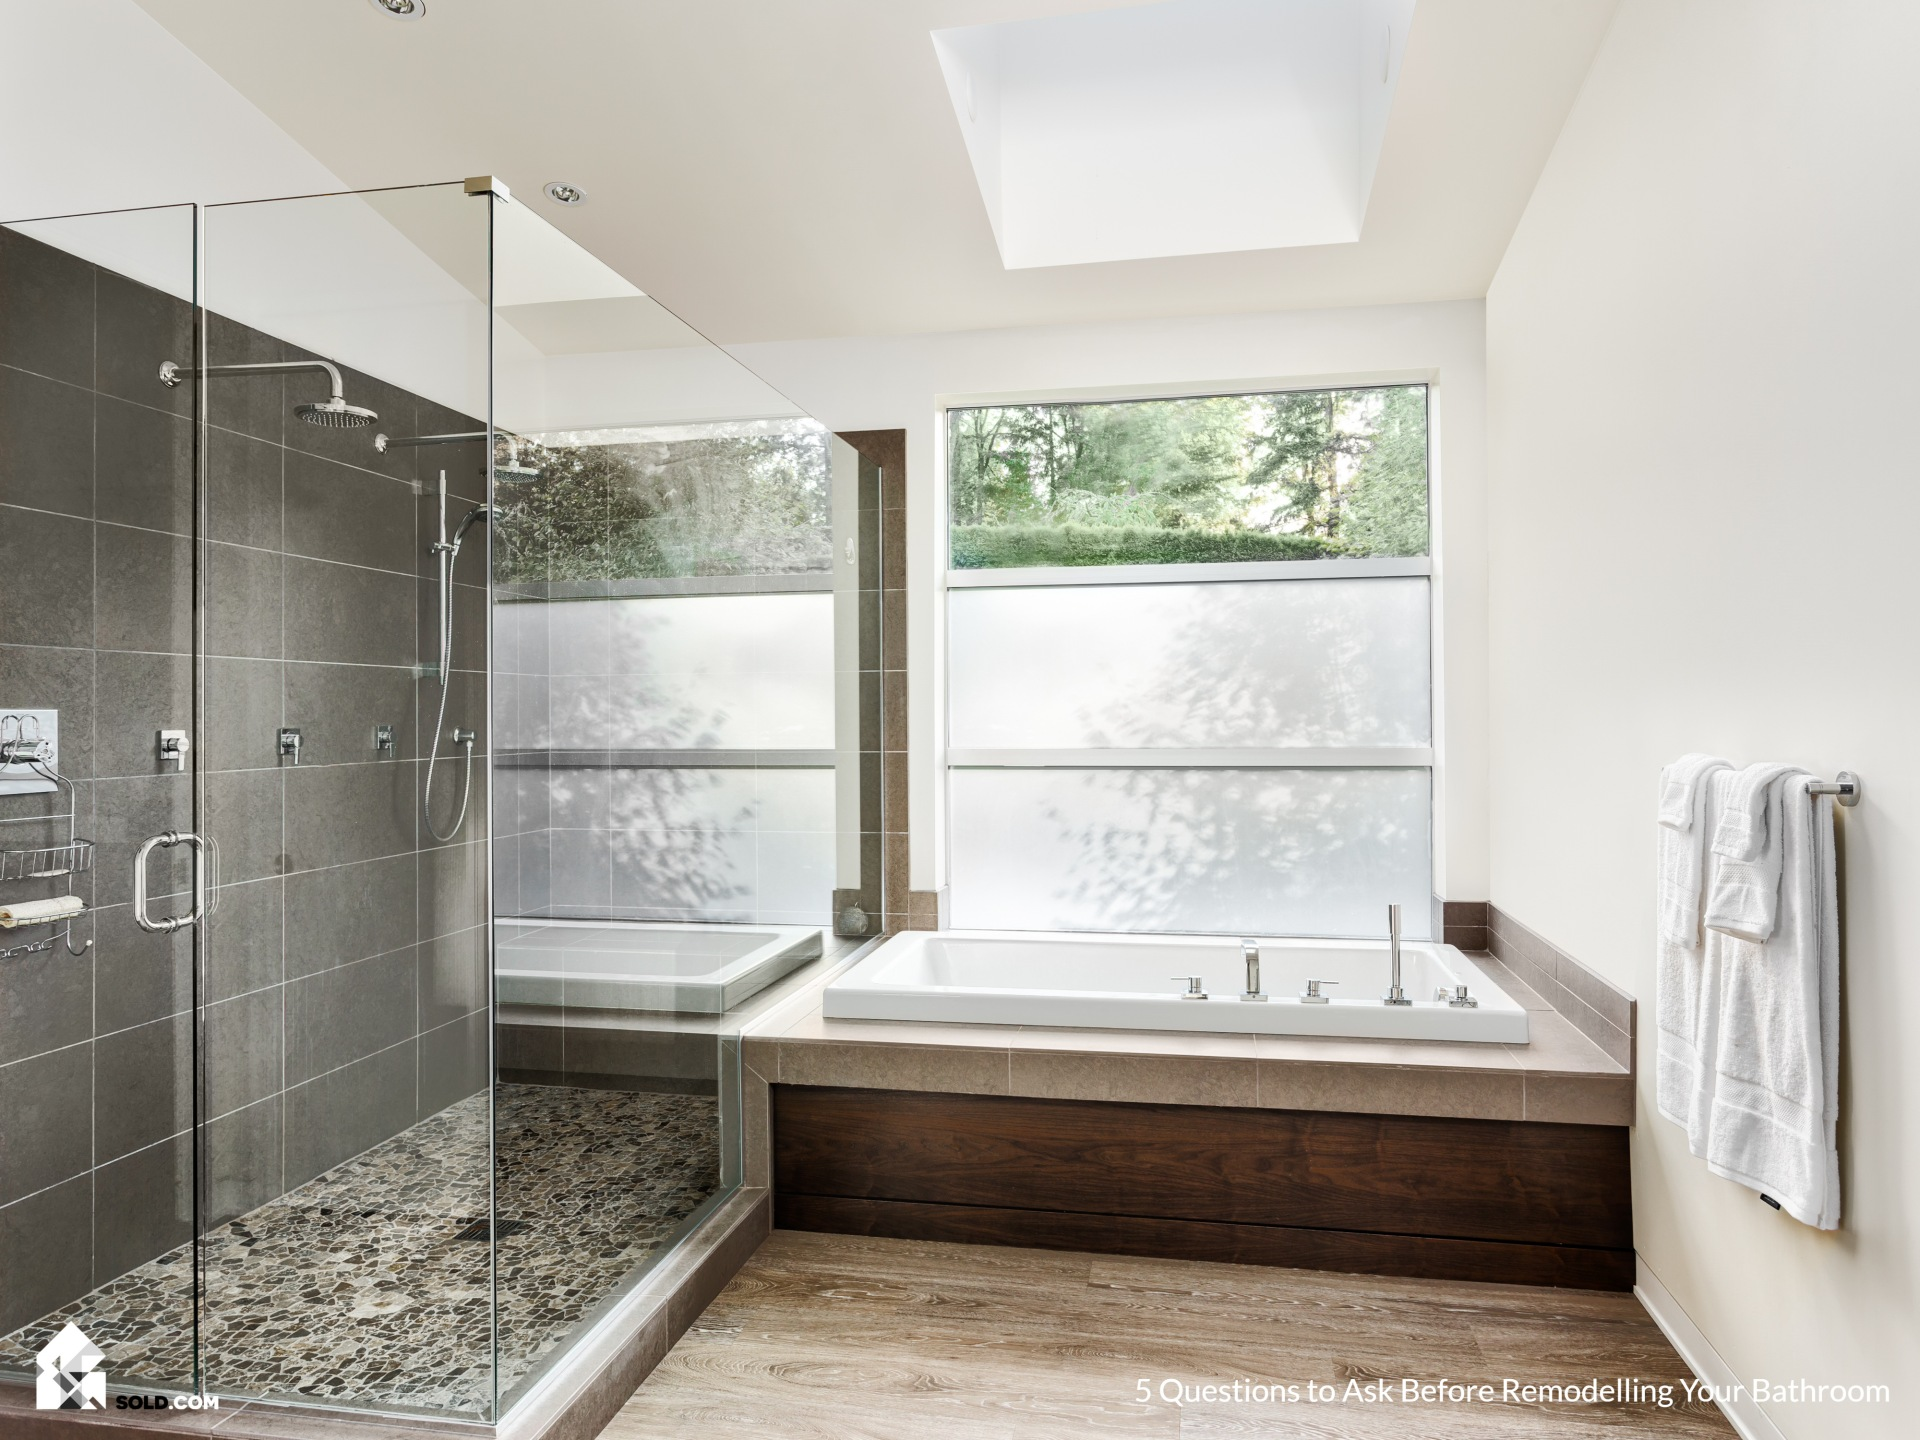 5 Questions to Ask Before Remodeling Your Bathroom